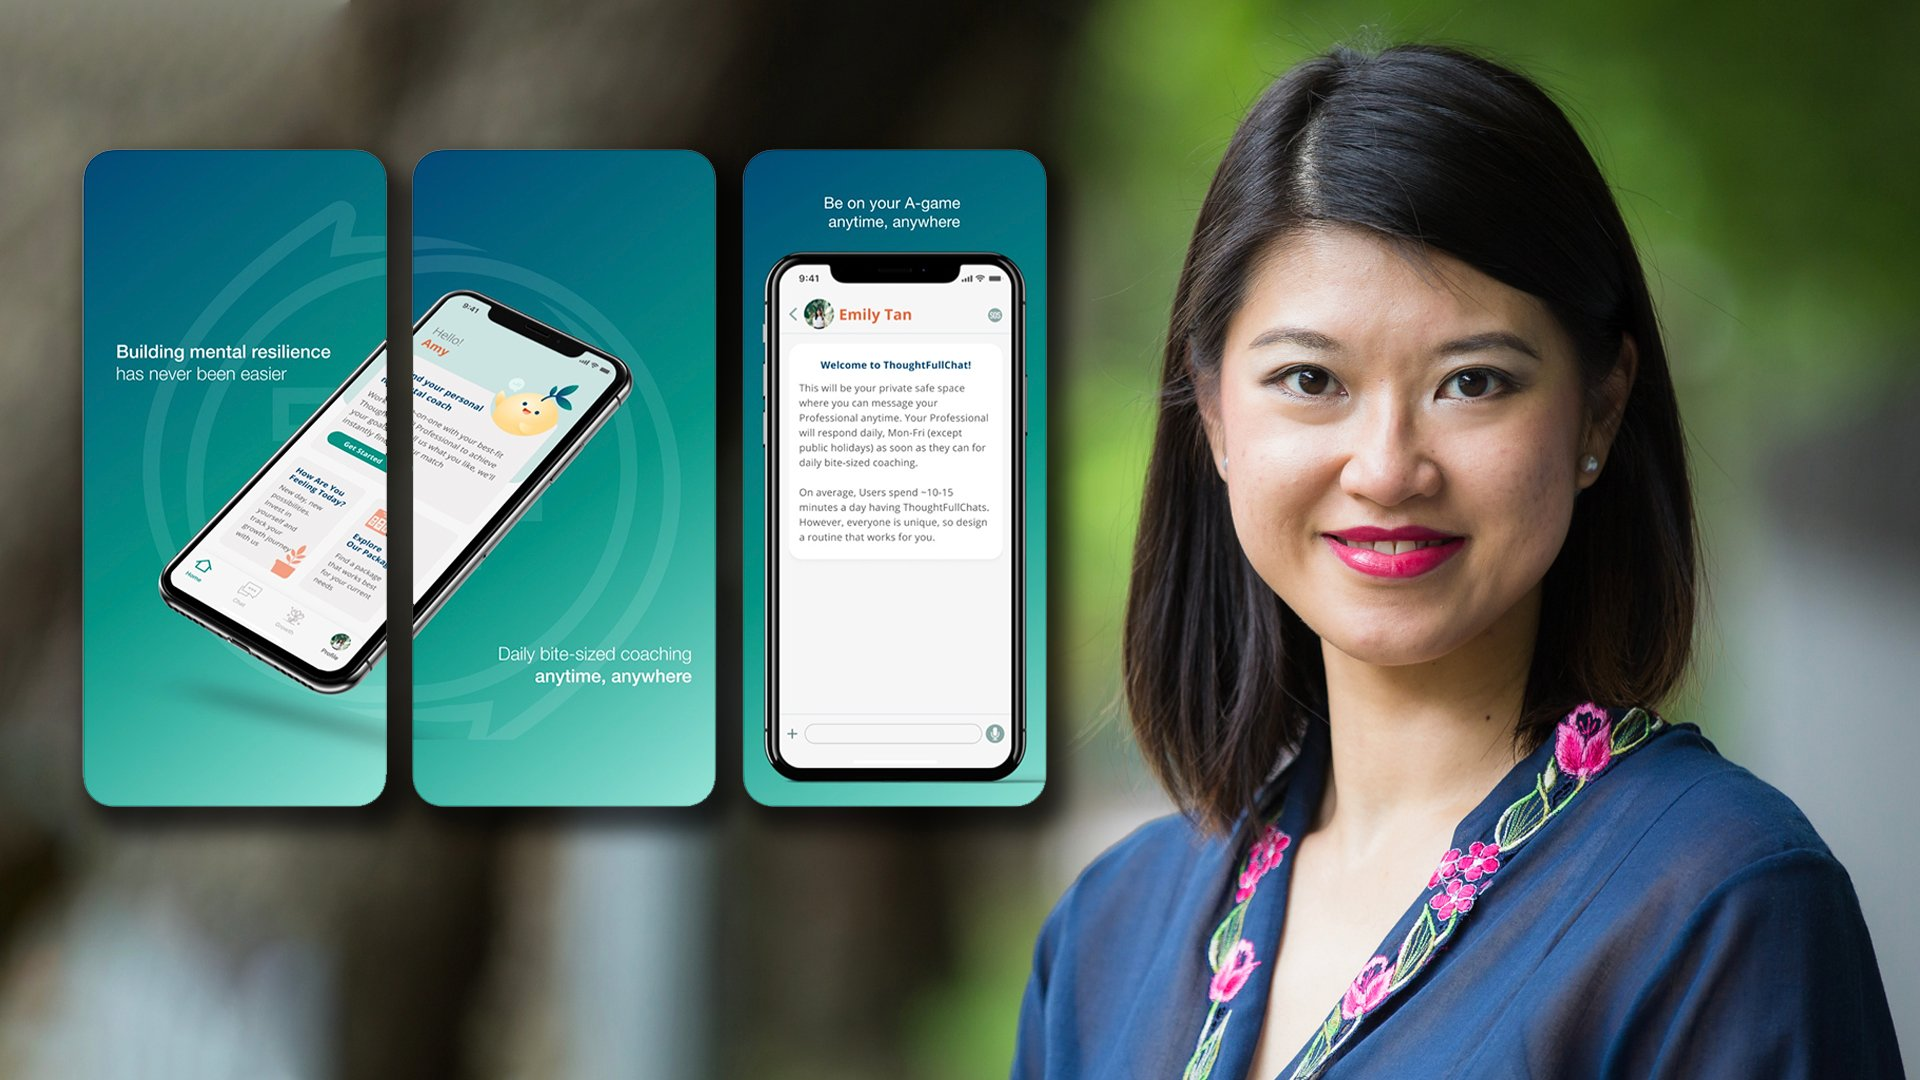 World Mental Health Day: She Created An App To Provide On-Demand Counselling